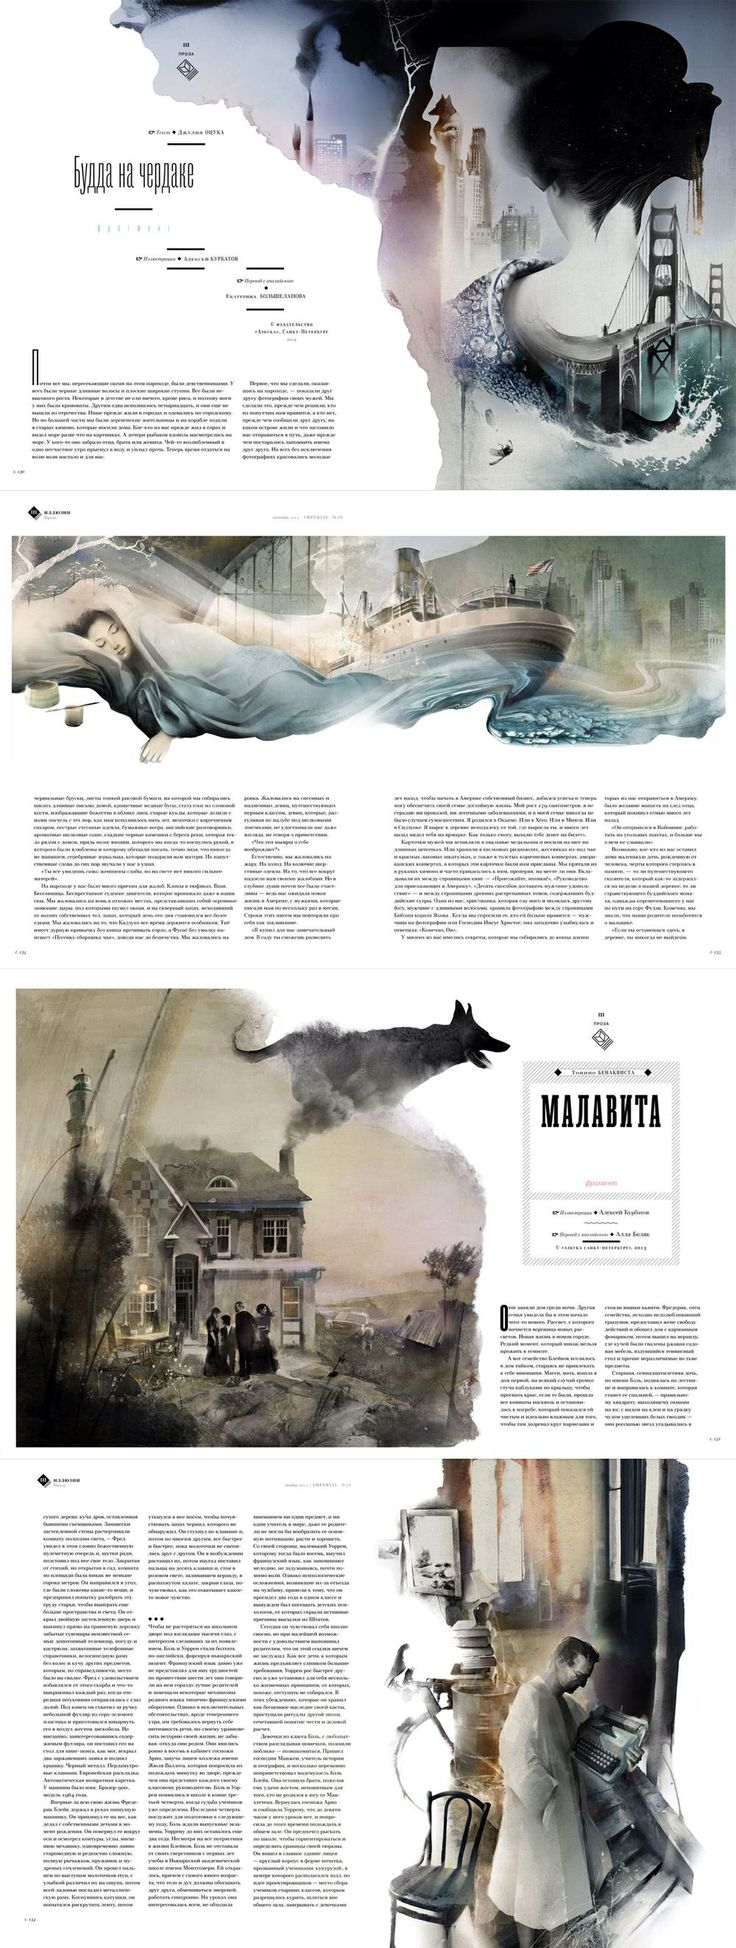 The drawings are ethereal to me which gives me a warm feeling. When I think of warmth, I think of home-personal. Editorial Design Inspiration